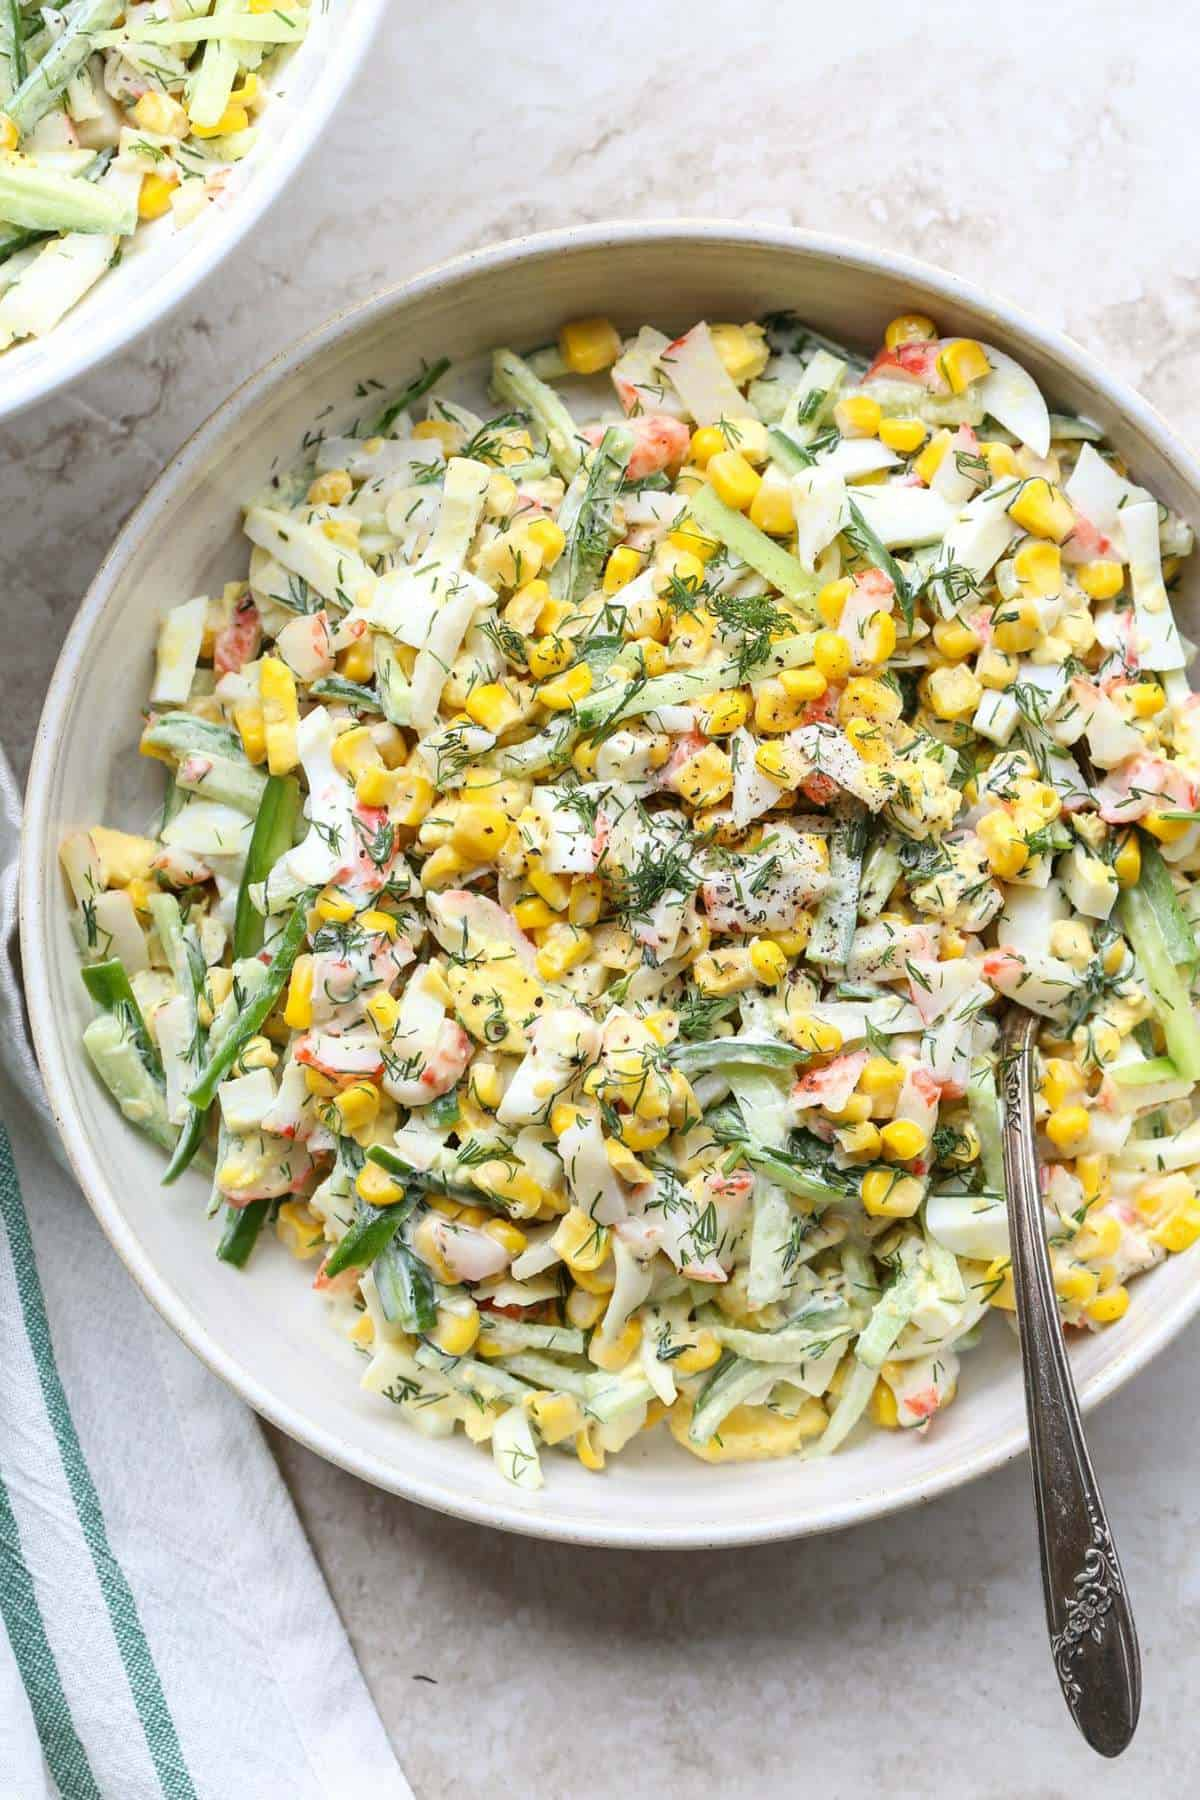 Crab corn egg salad recipe with a mayo dressing, topped with dill.